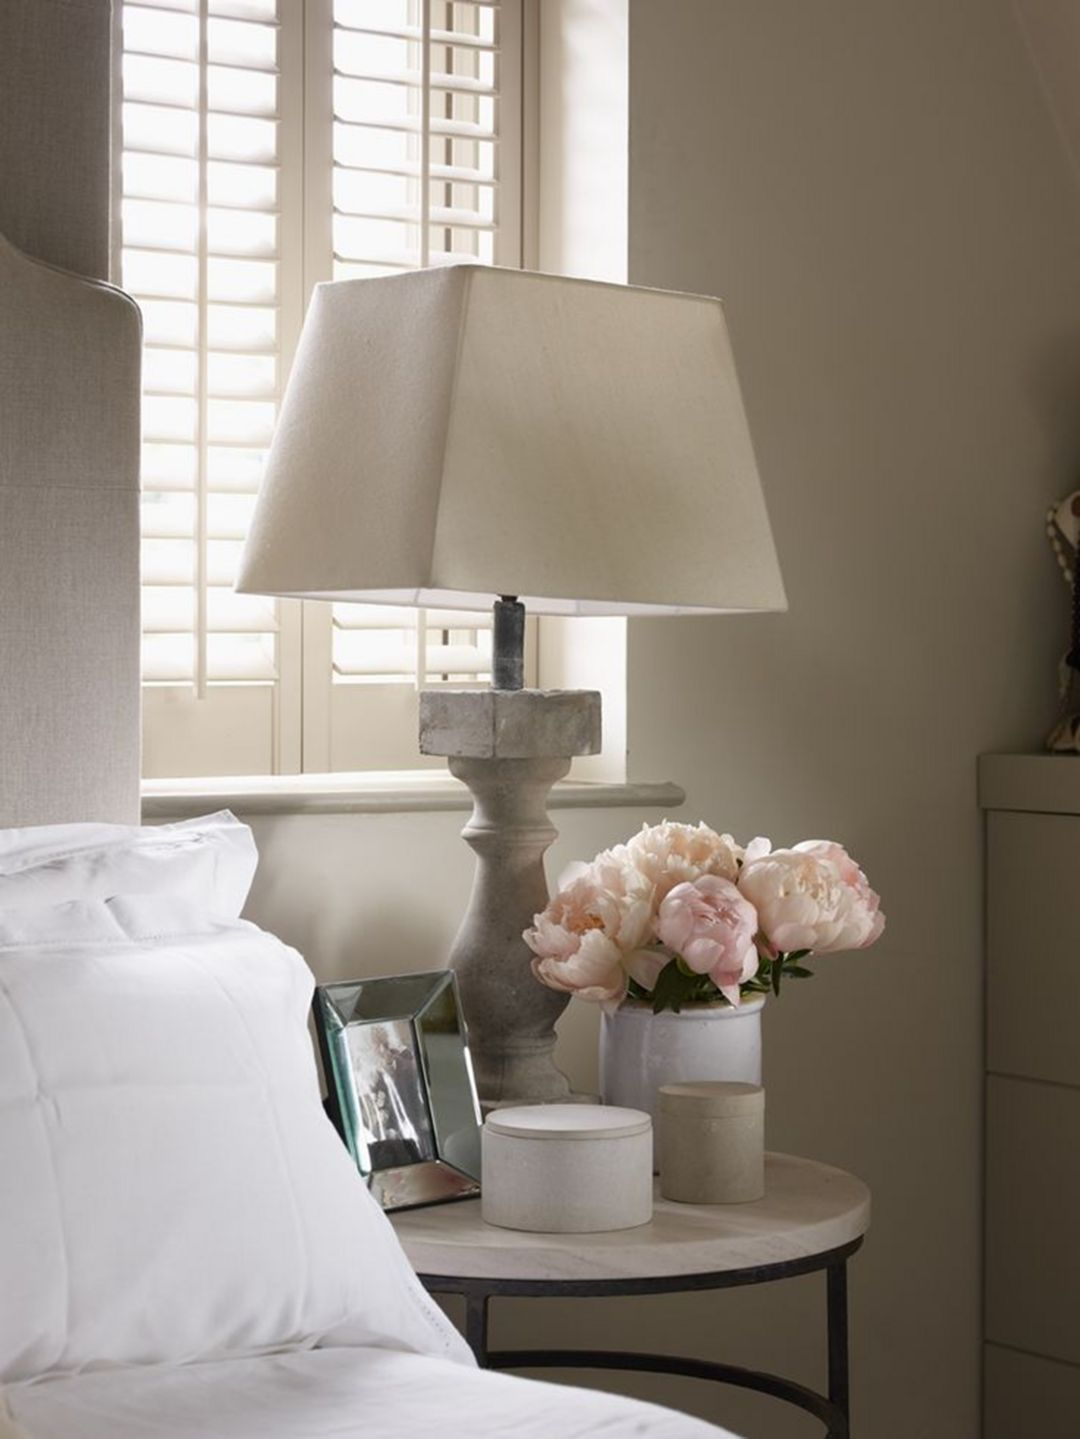 12 Awesome Bedside Table Lamps Ideas Decorits Nightstand Decor